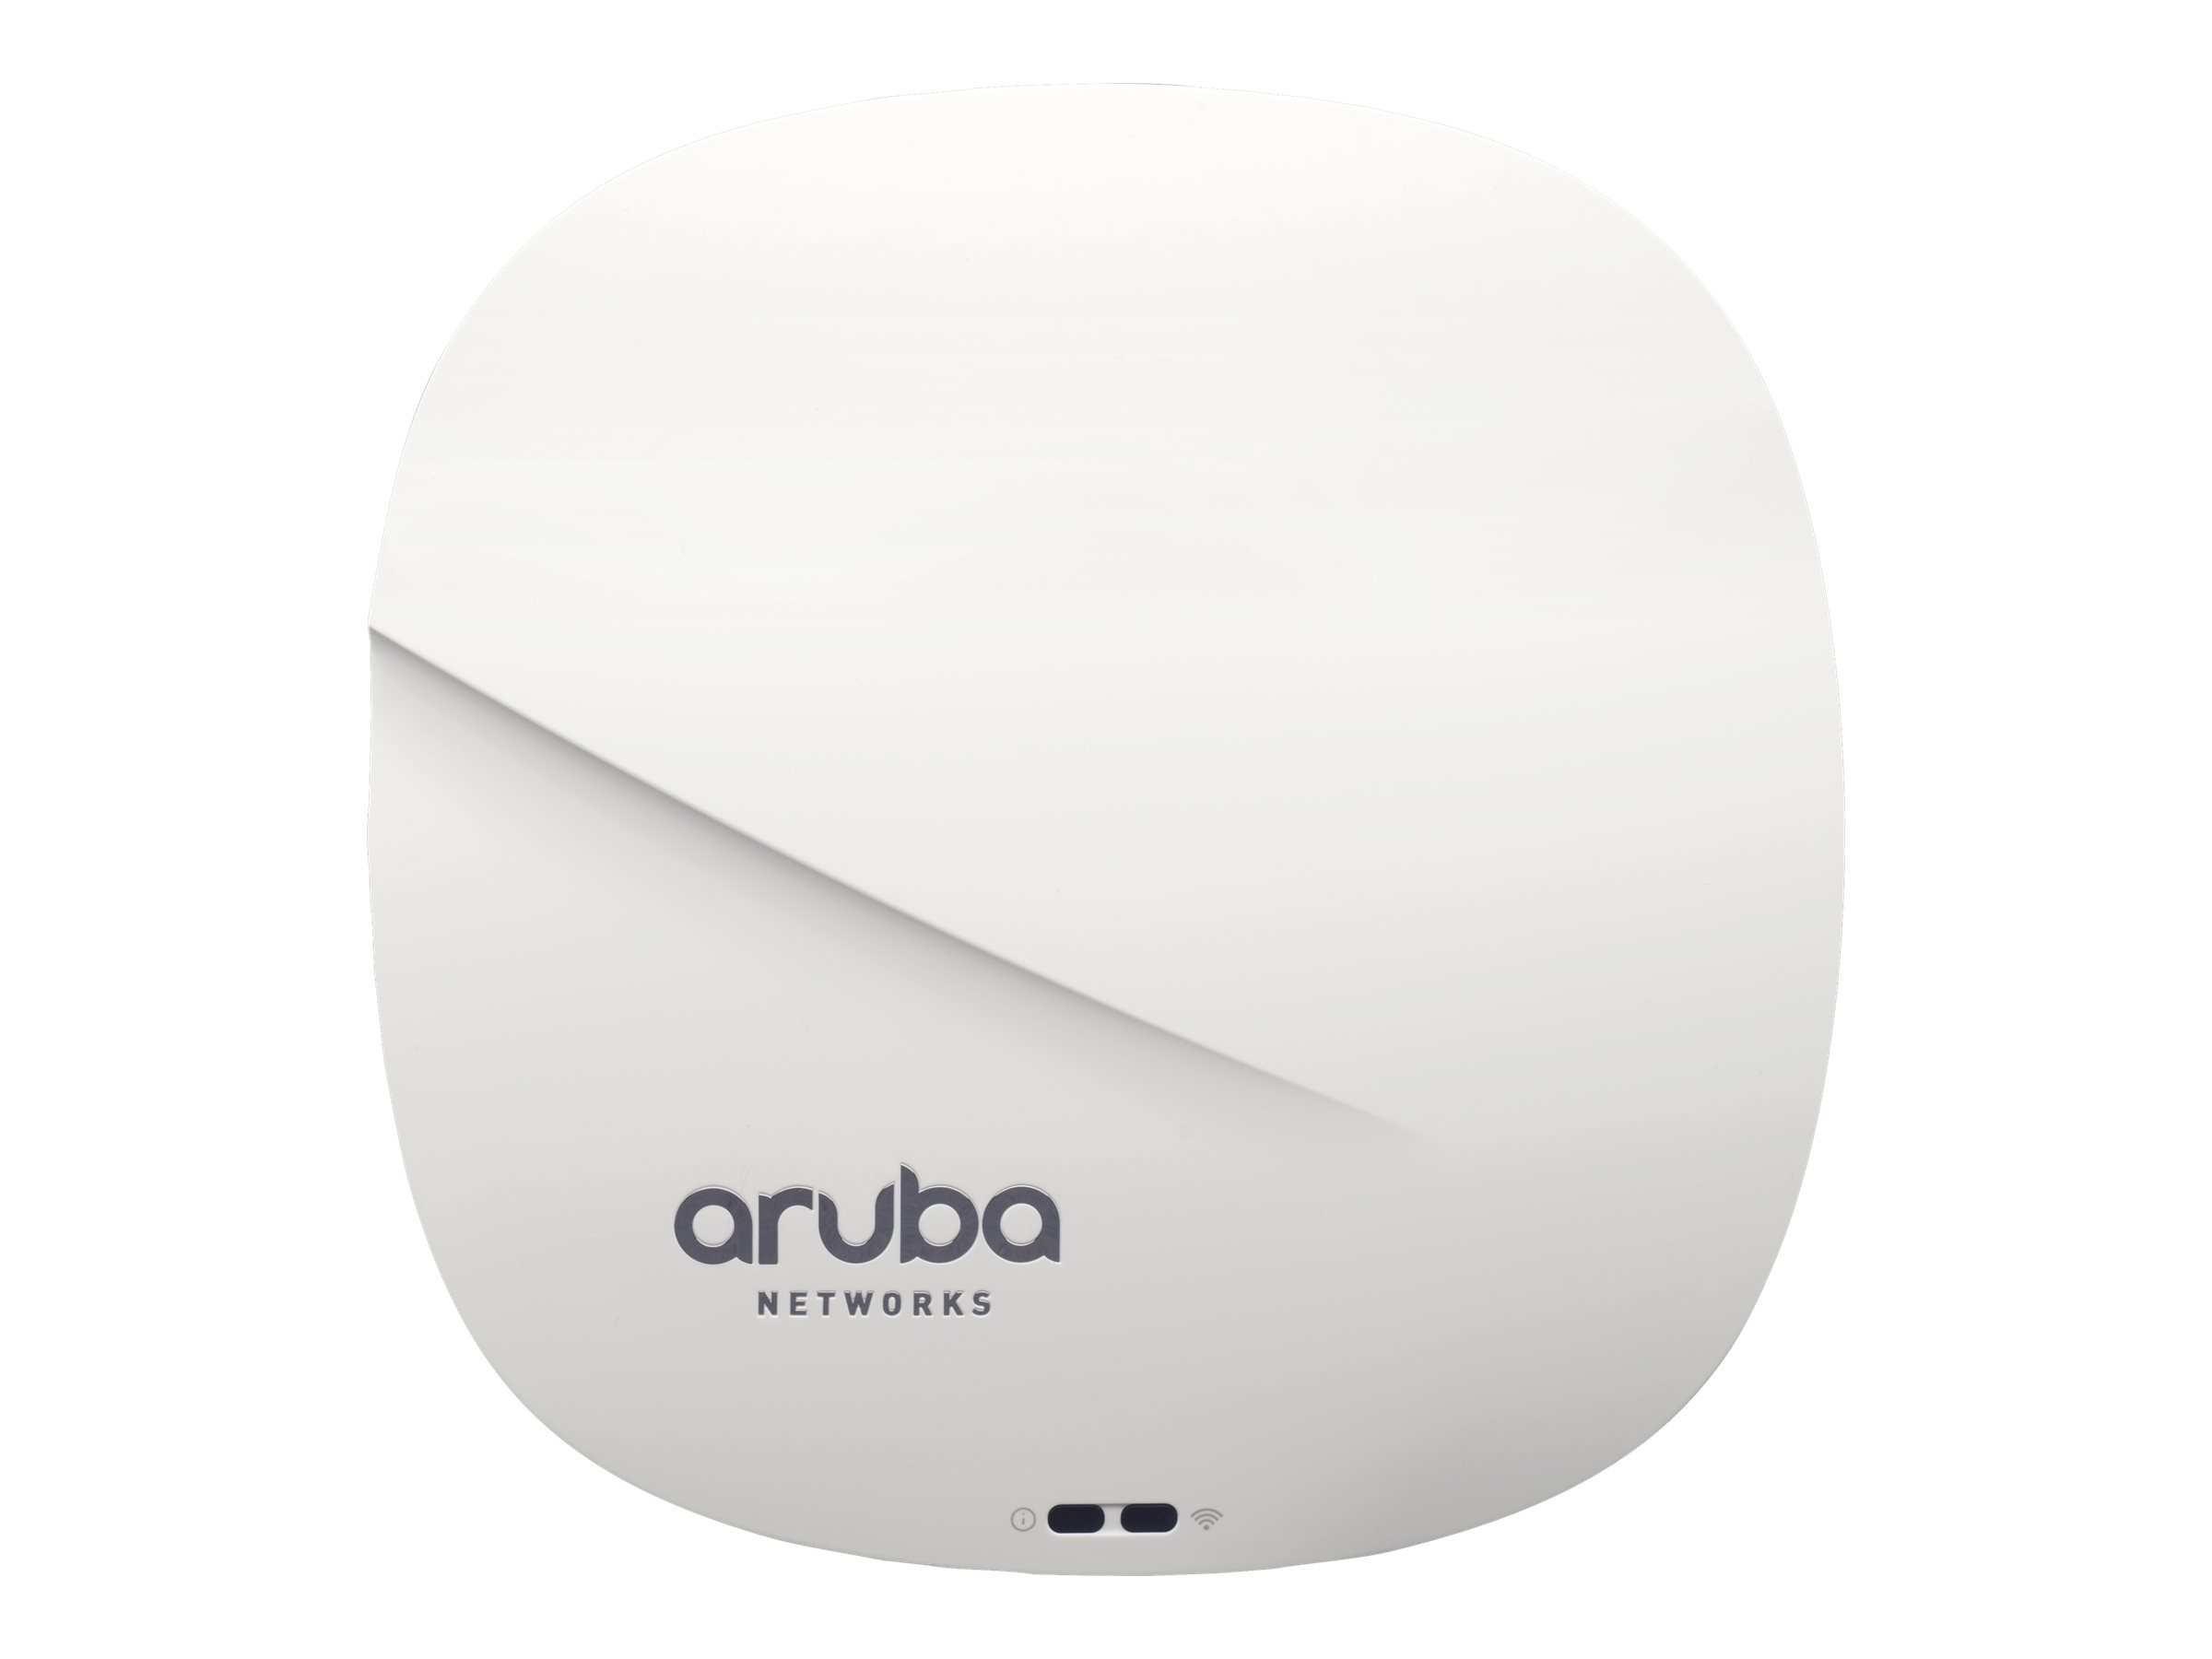 HPE Aruba AP-334 FIPS/TAA-compliant - wireless access point